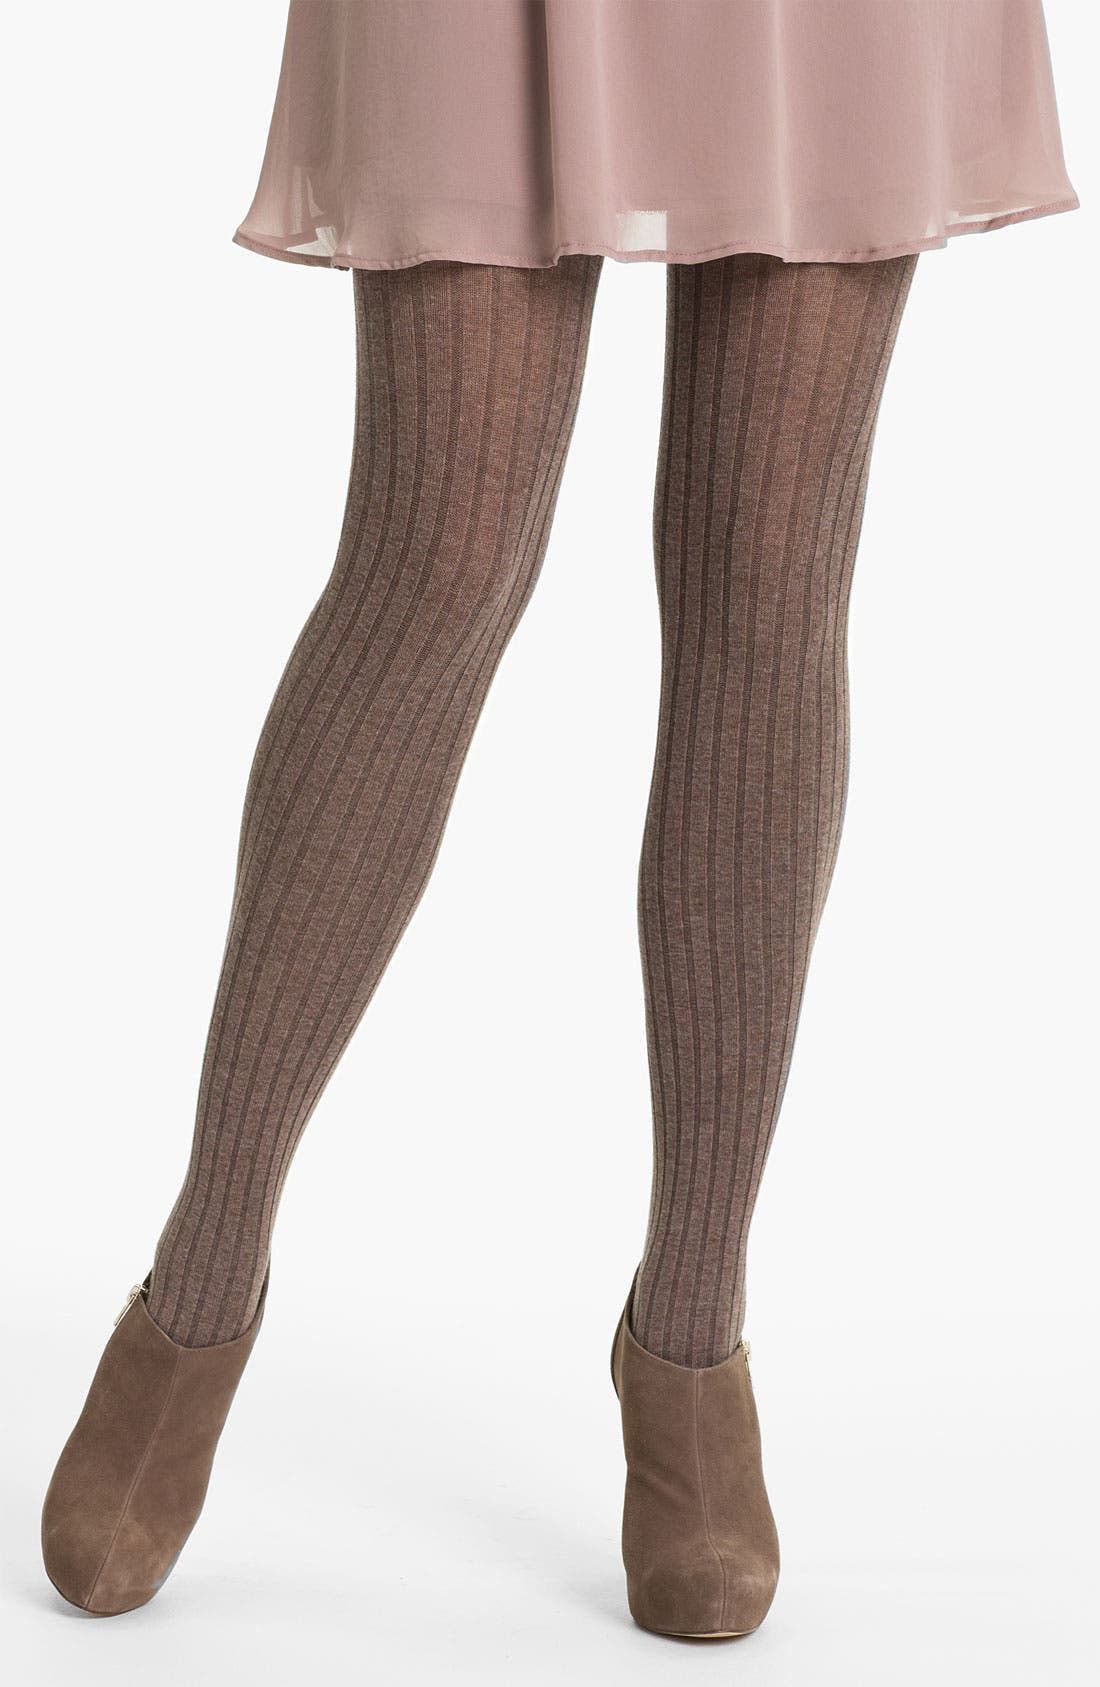 Alternate Image 1 Selected - Oroblu 'Angela' Ribbed Cotton Tights